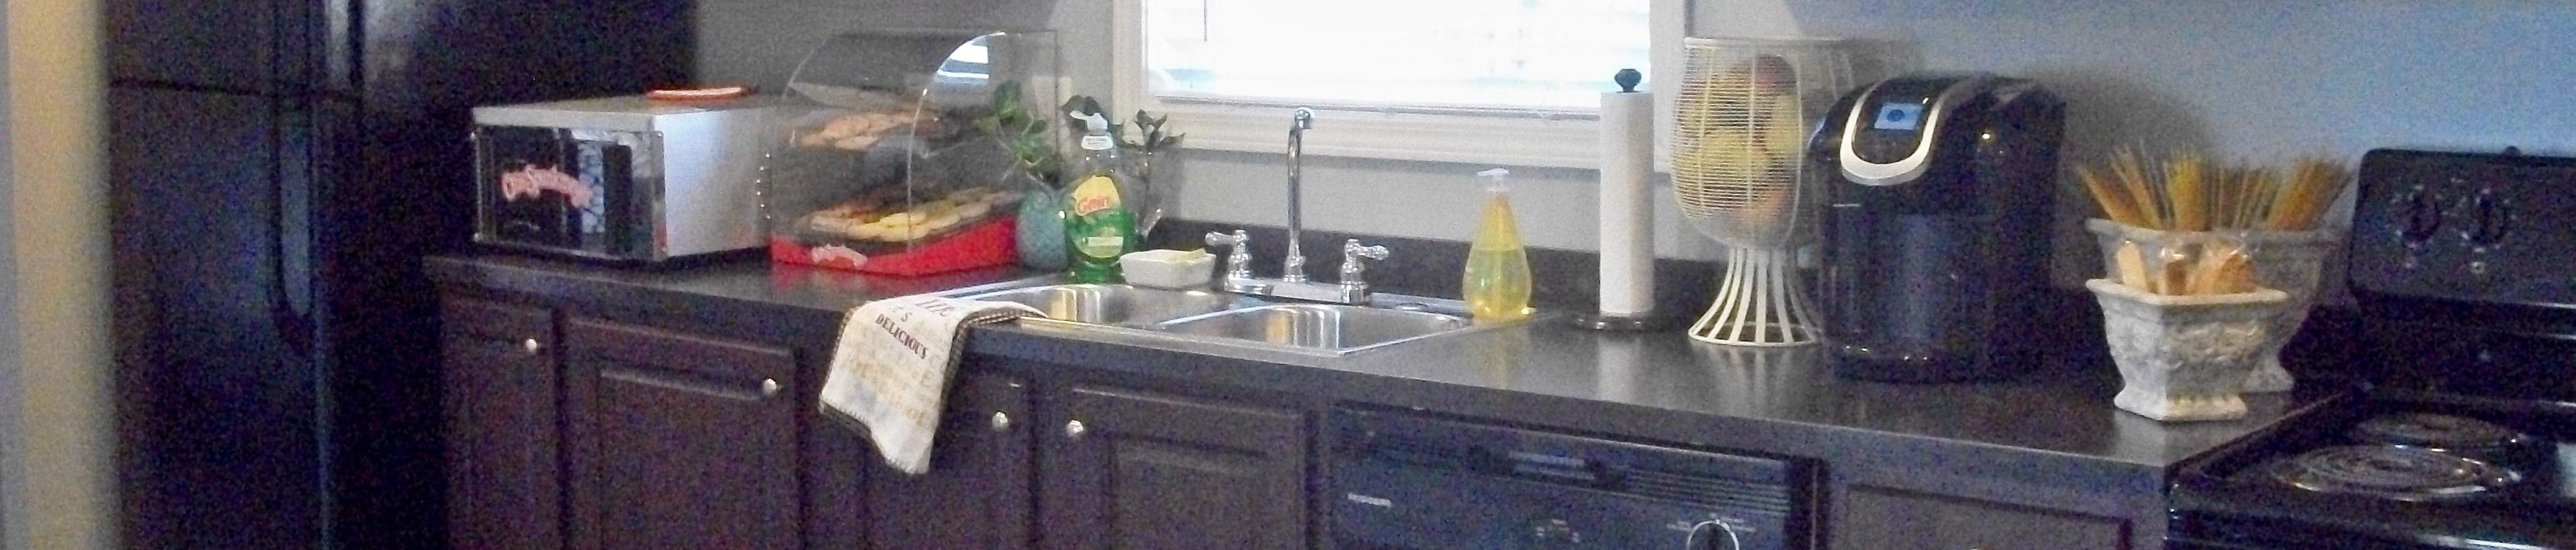 Fully-Equipped Kitchen at Pine Village Rental Homes in Sanford, NC